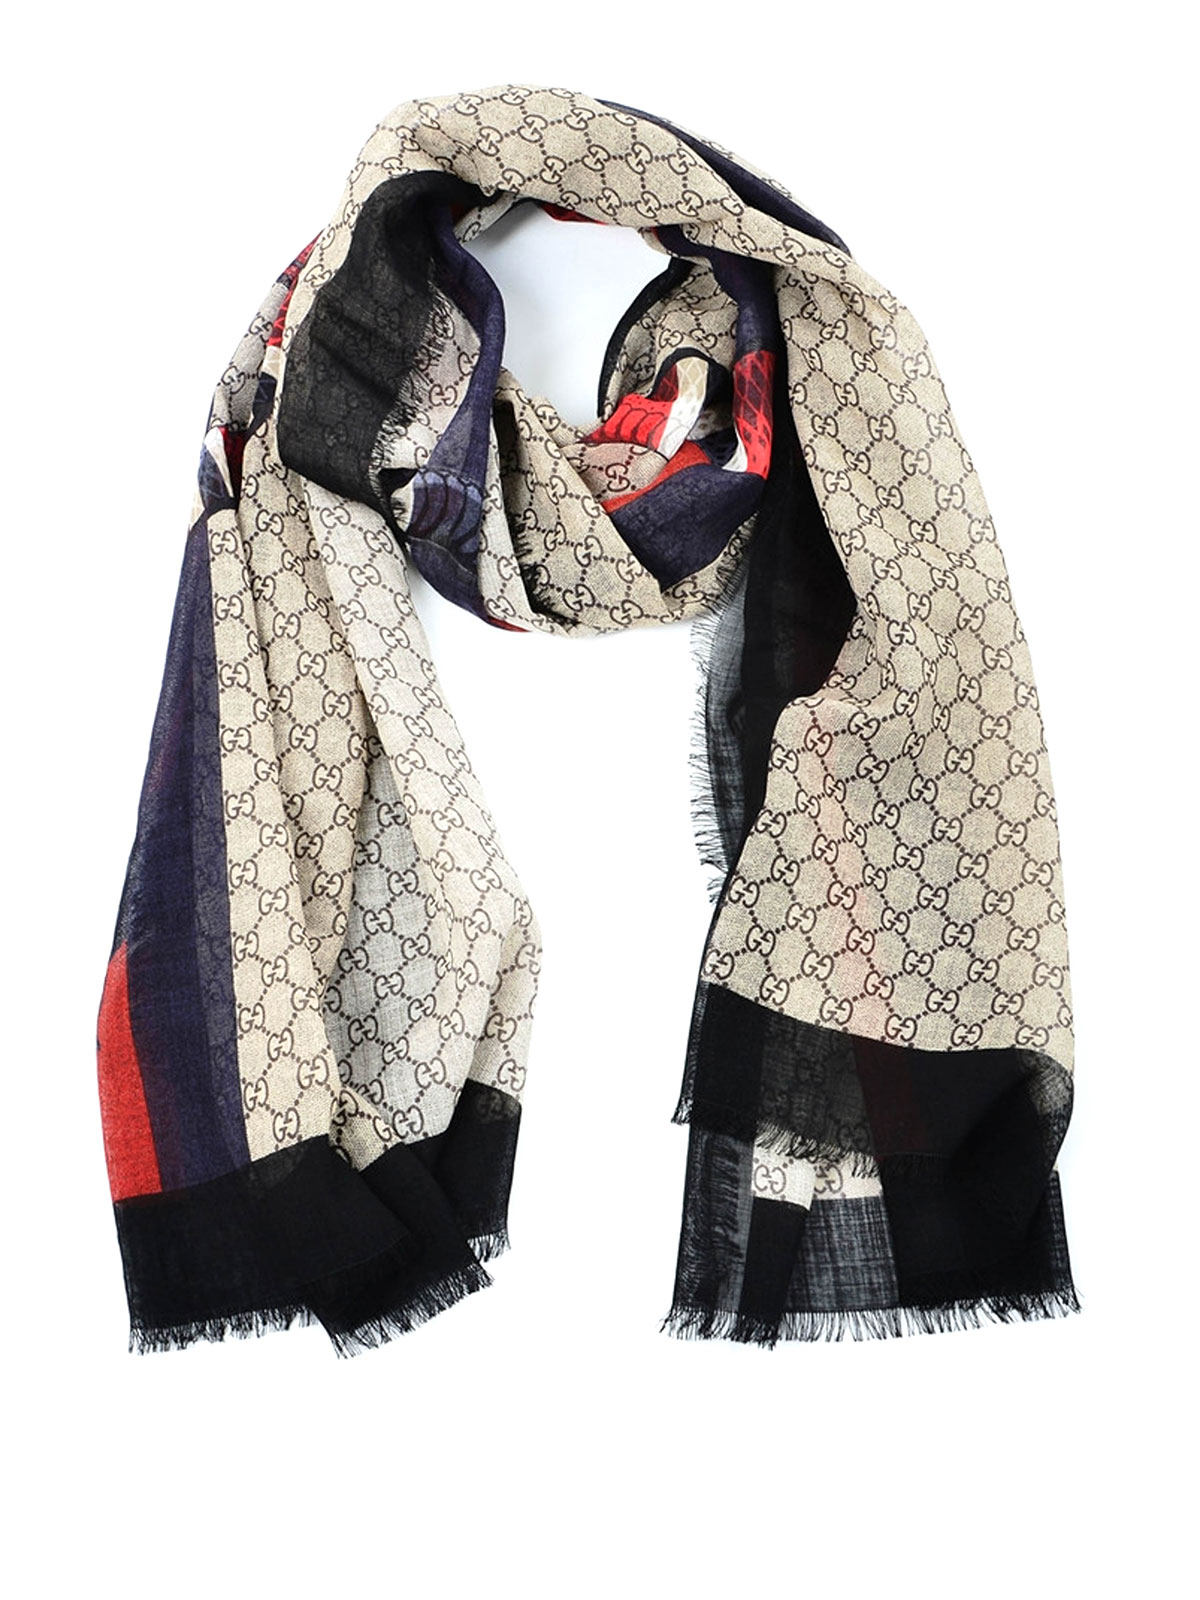 e8cde4d4f16d Gucci web and snake print wool scarf scarves jpg 1200x1600 Gucci scarves